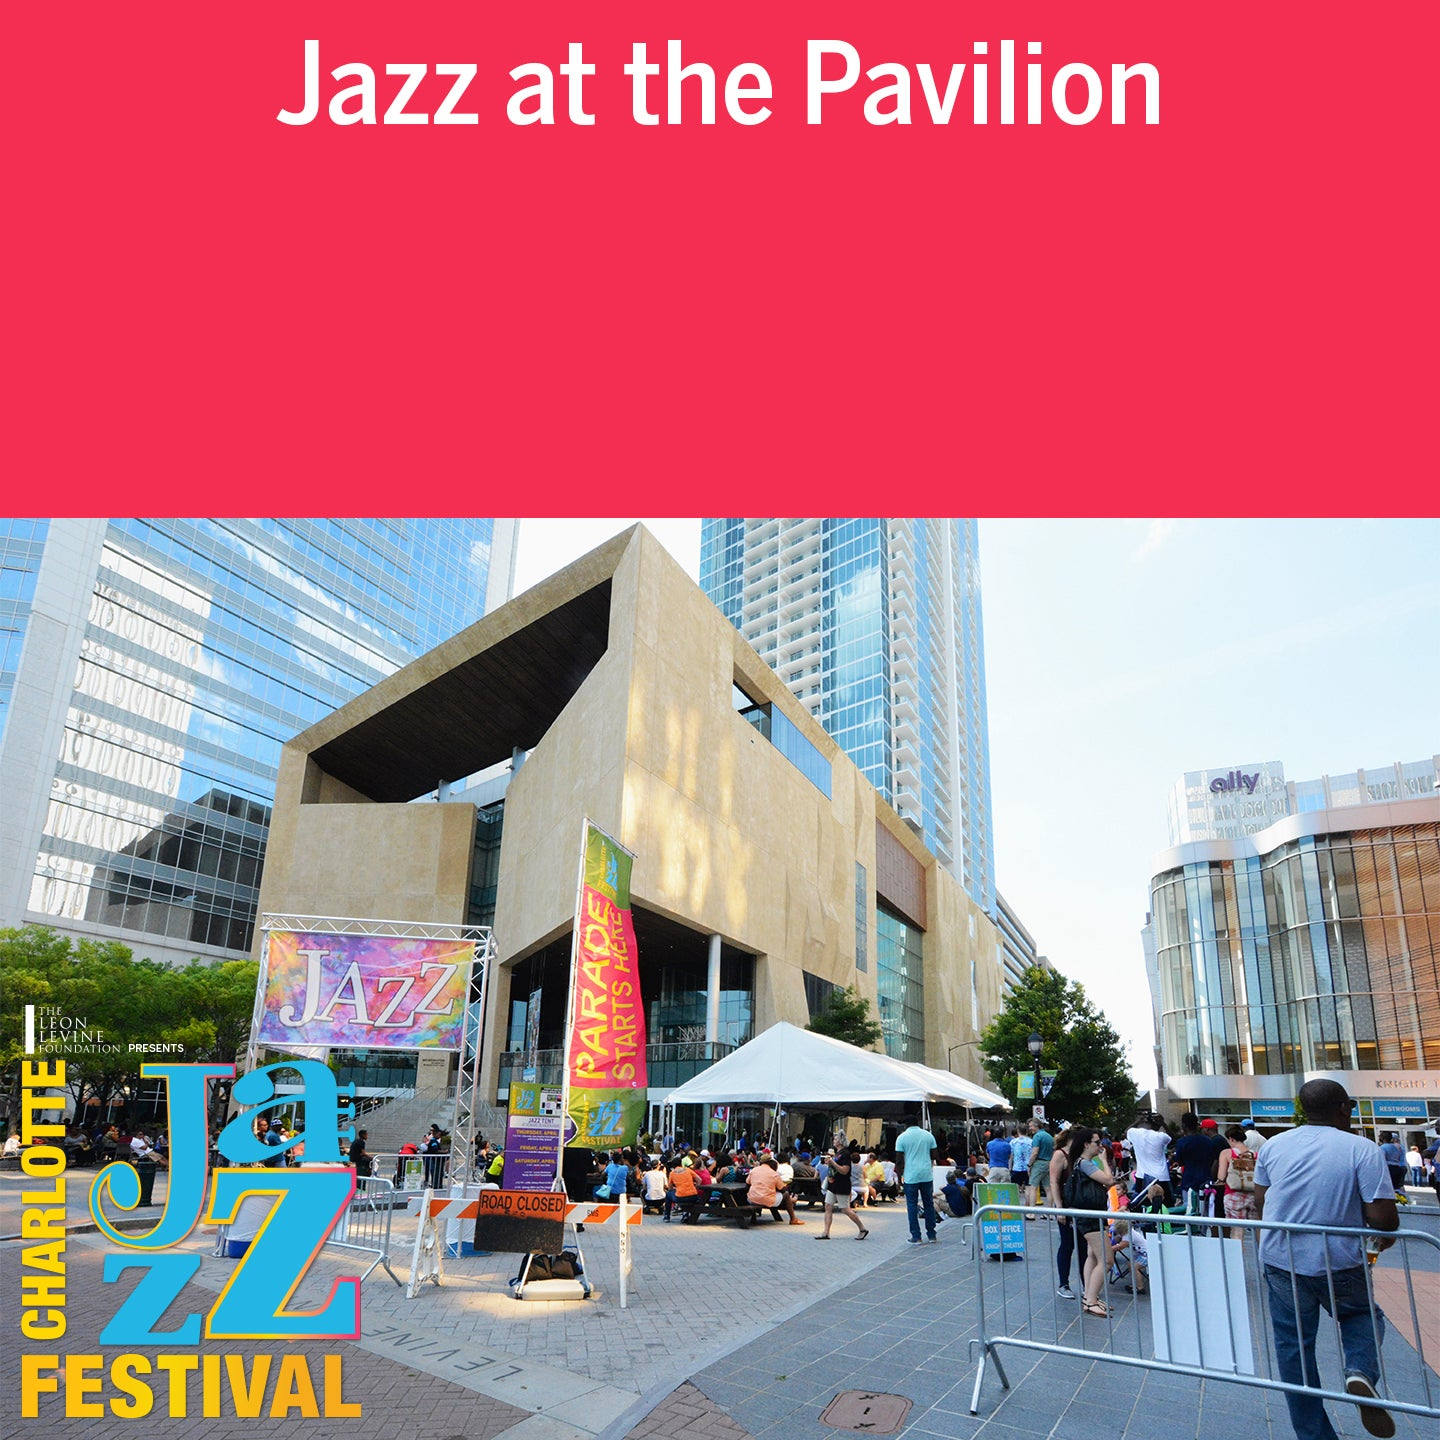 Jazz at the Pavilion